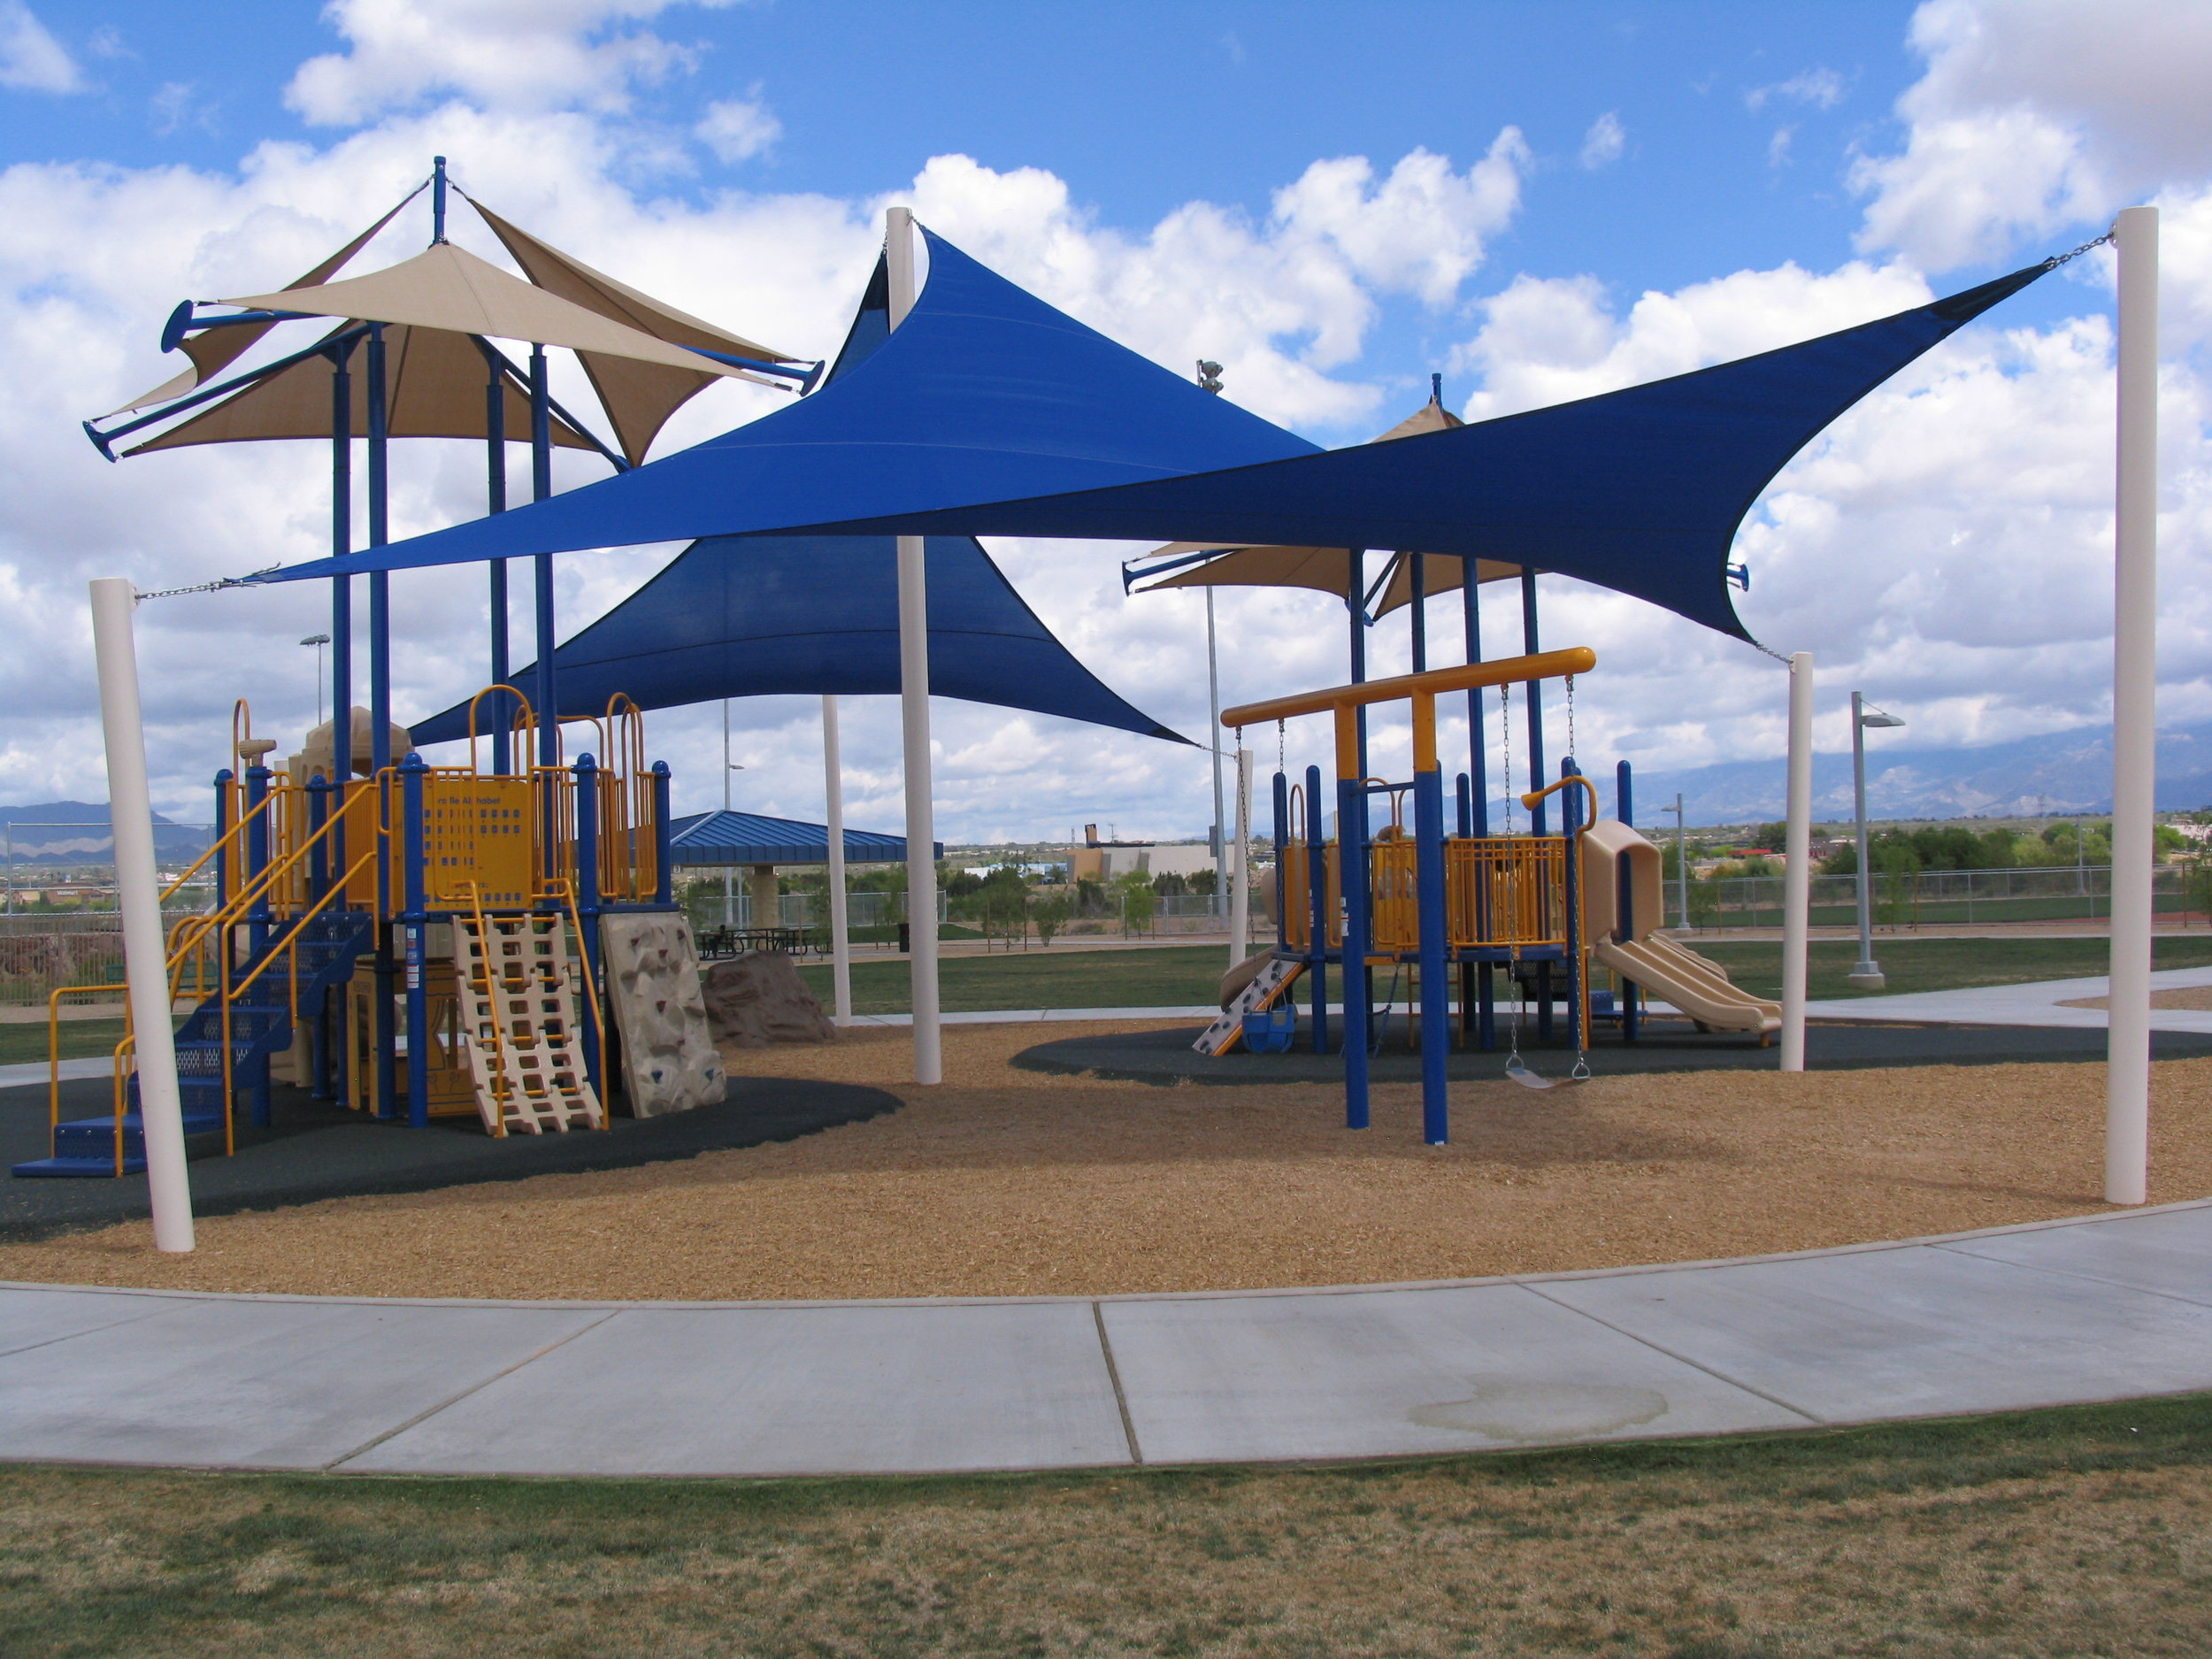 Playground at Crossroads at Silverbell District Park.